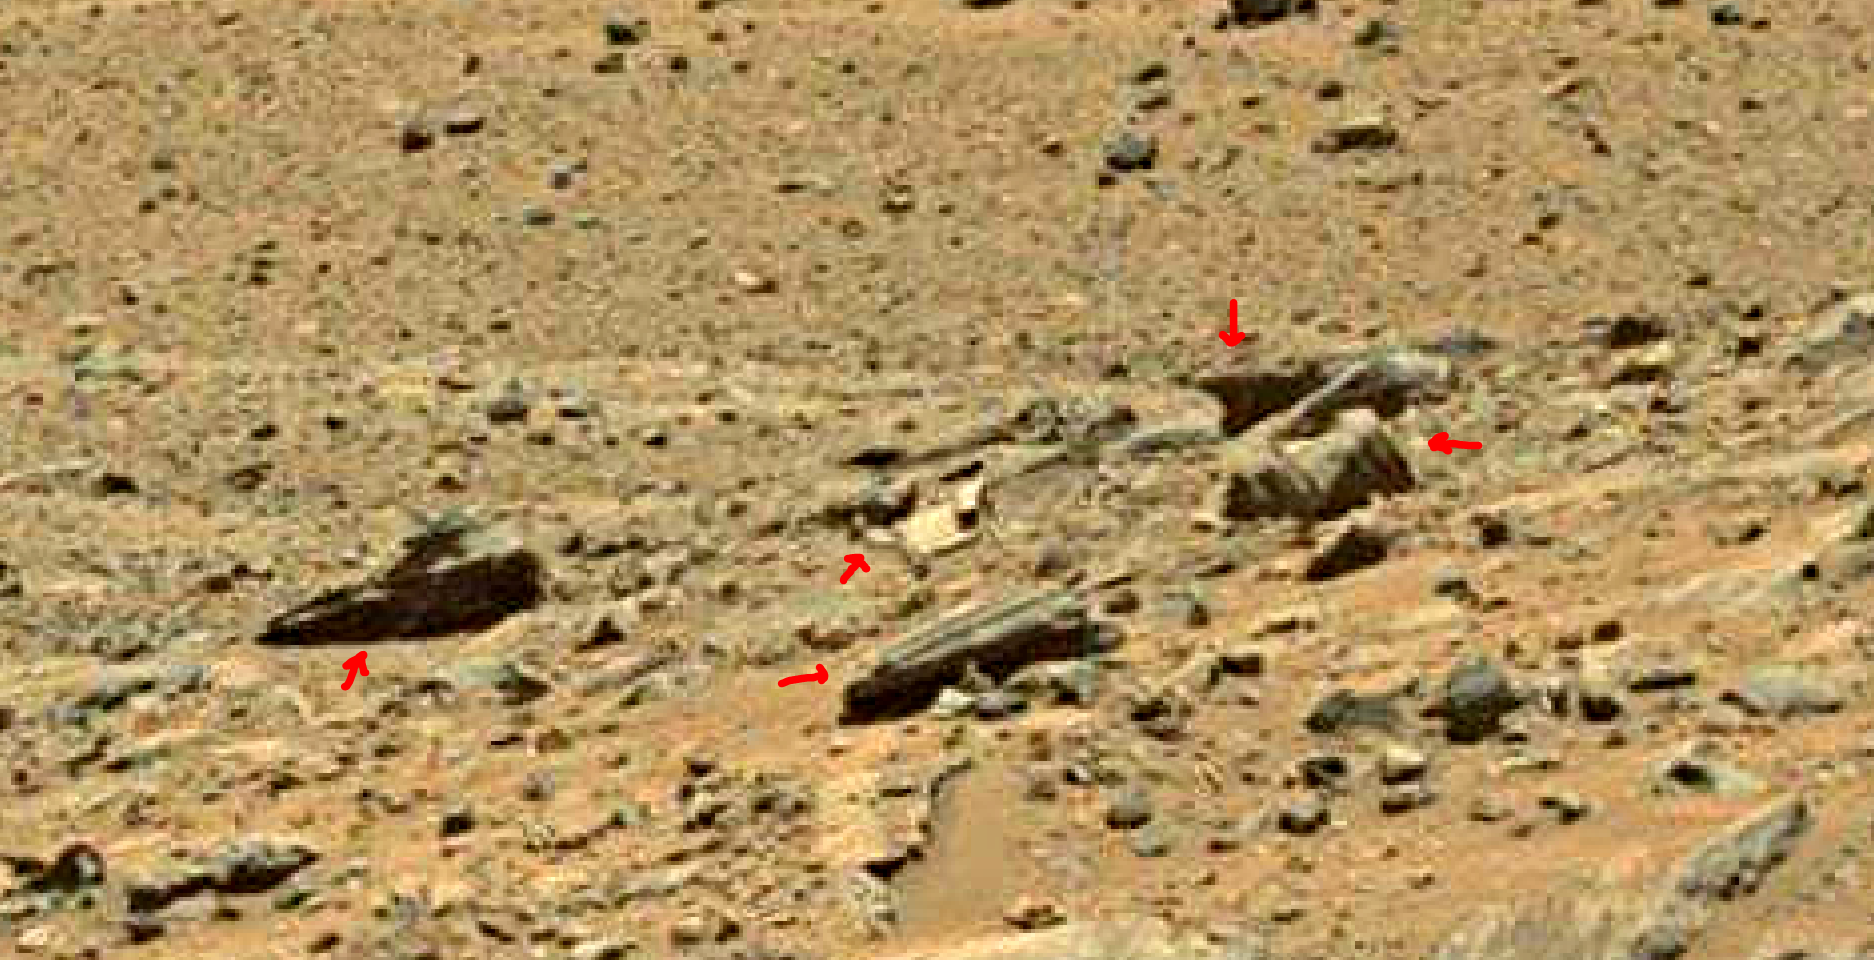 mars sol 1399 anomaly artifacts 17 was life on mars